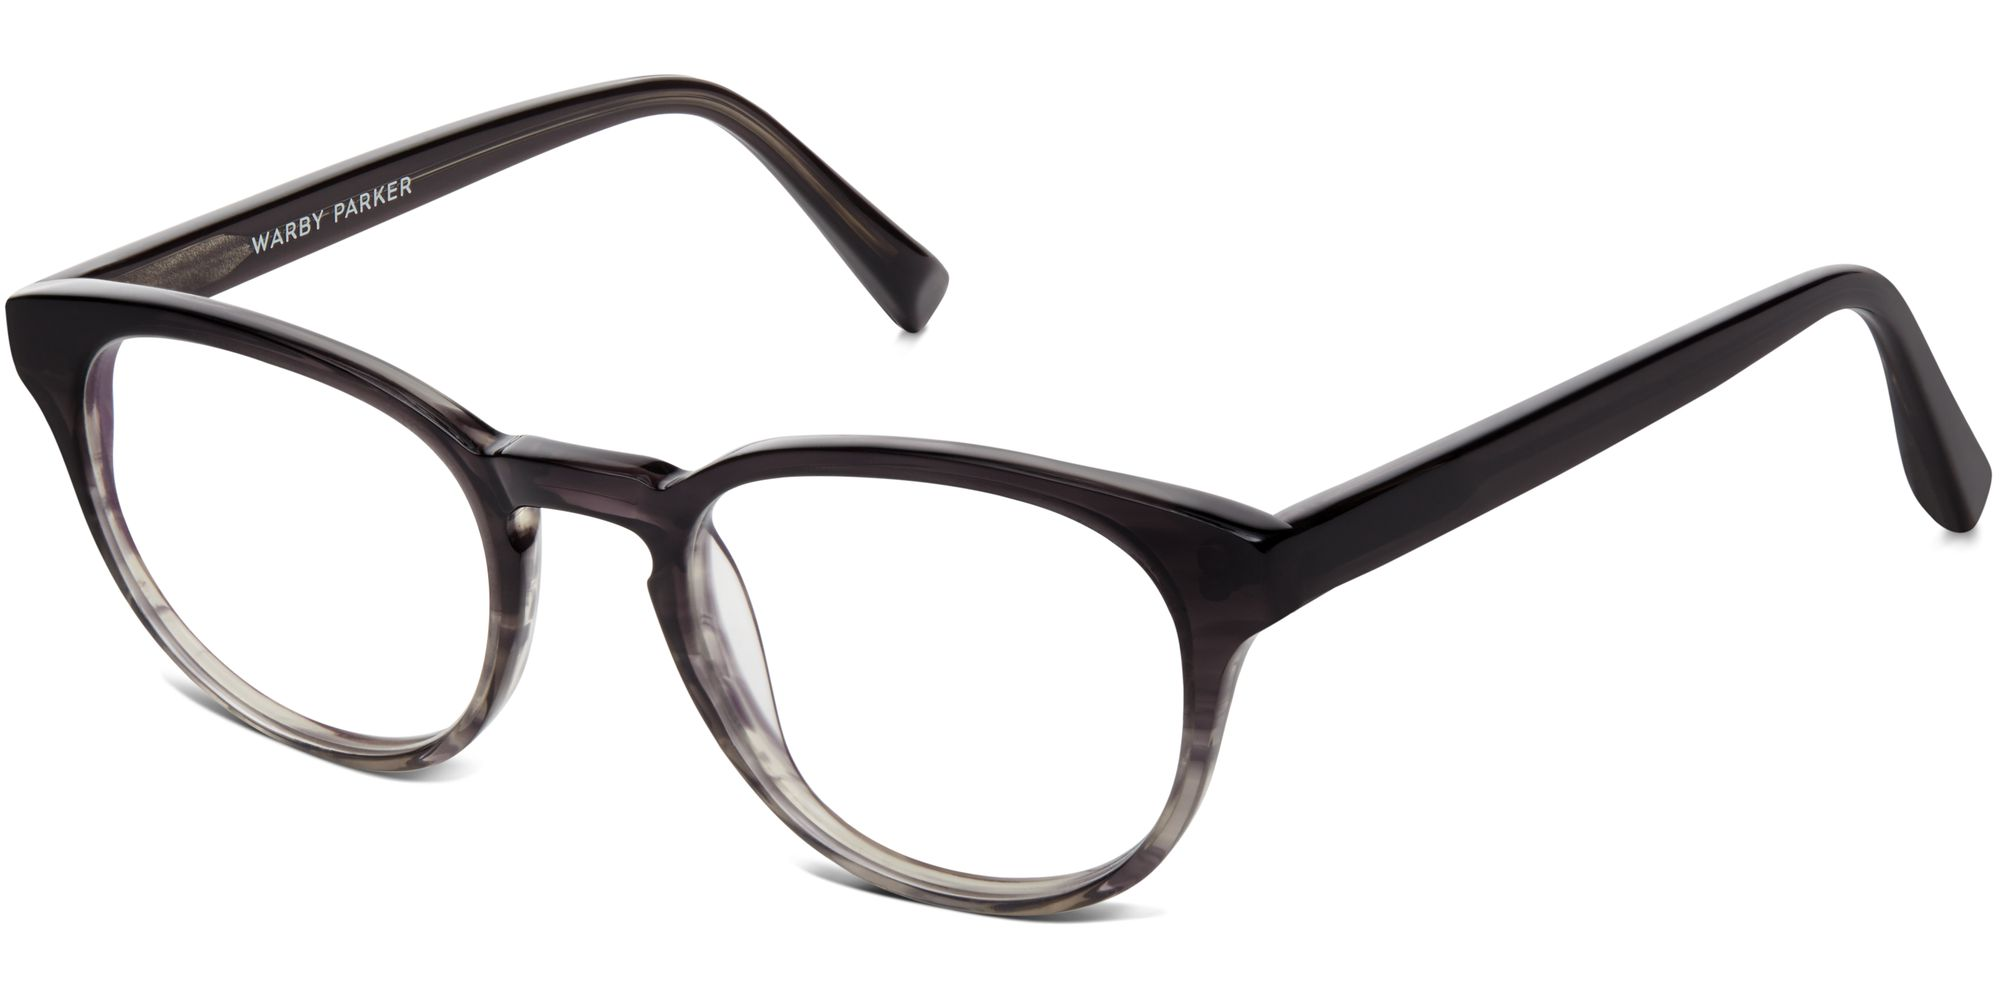 Eyeglass Frames To Try On At Home : I just put in to try at-home 5 different glass frames for ...